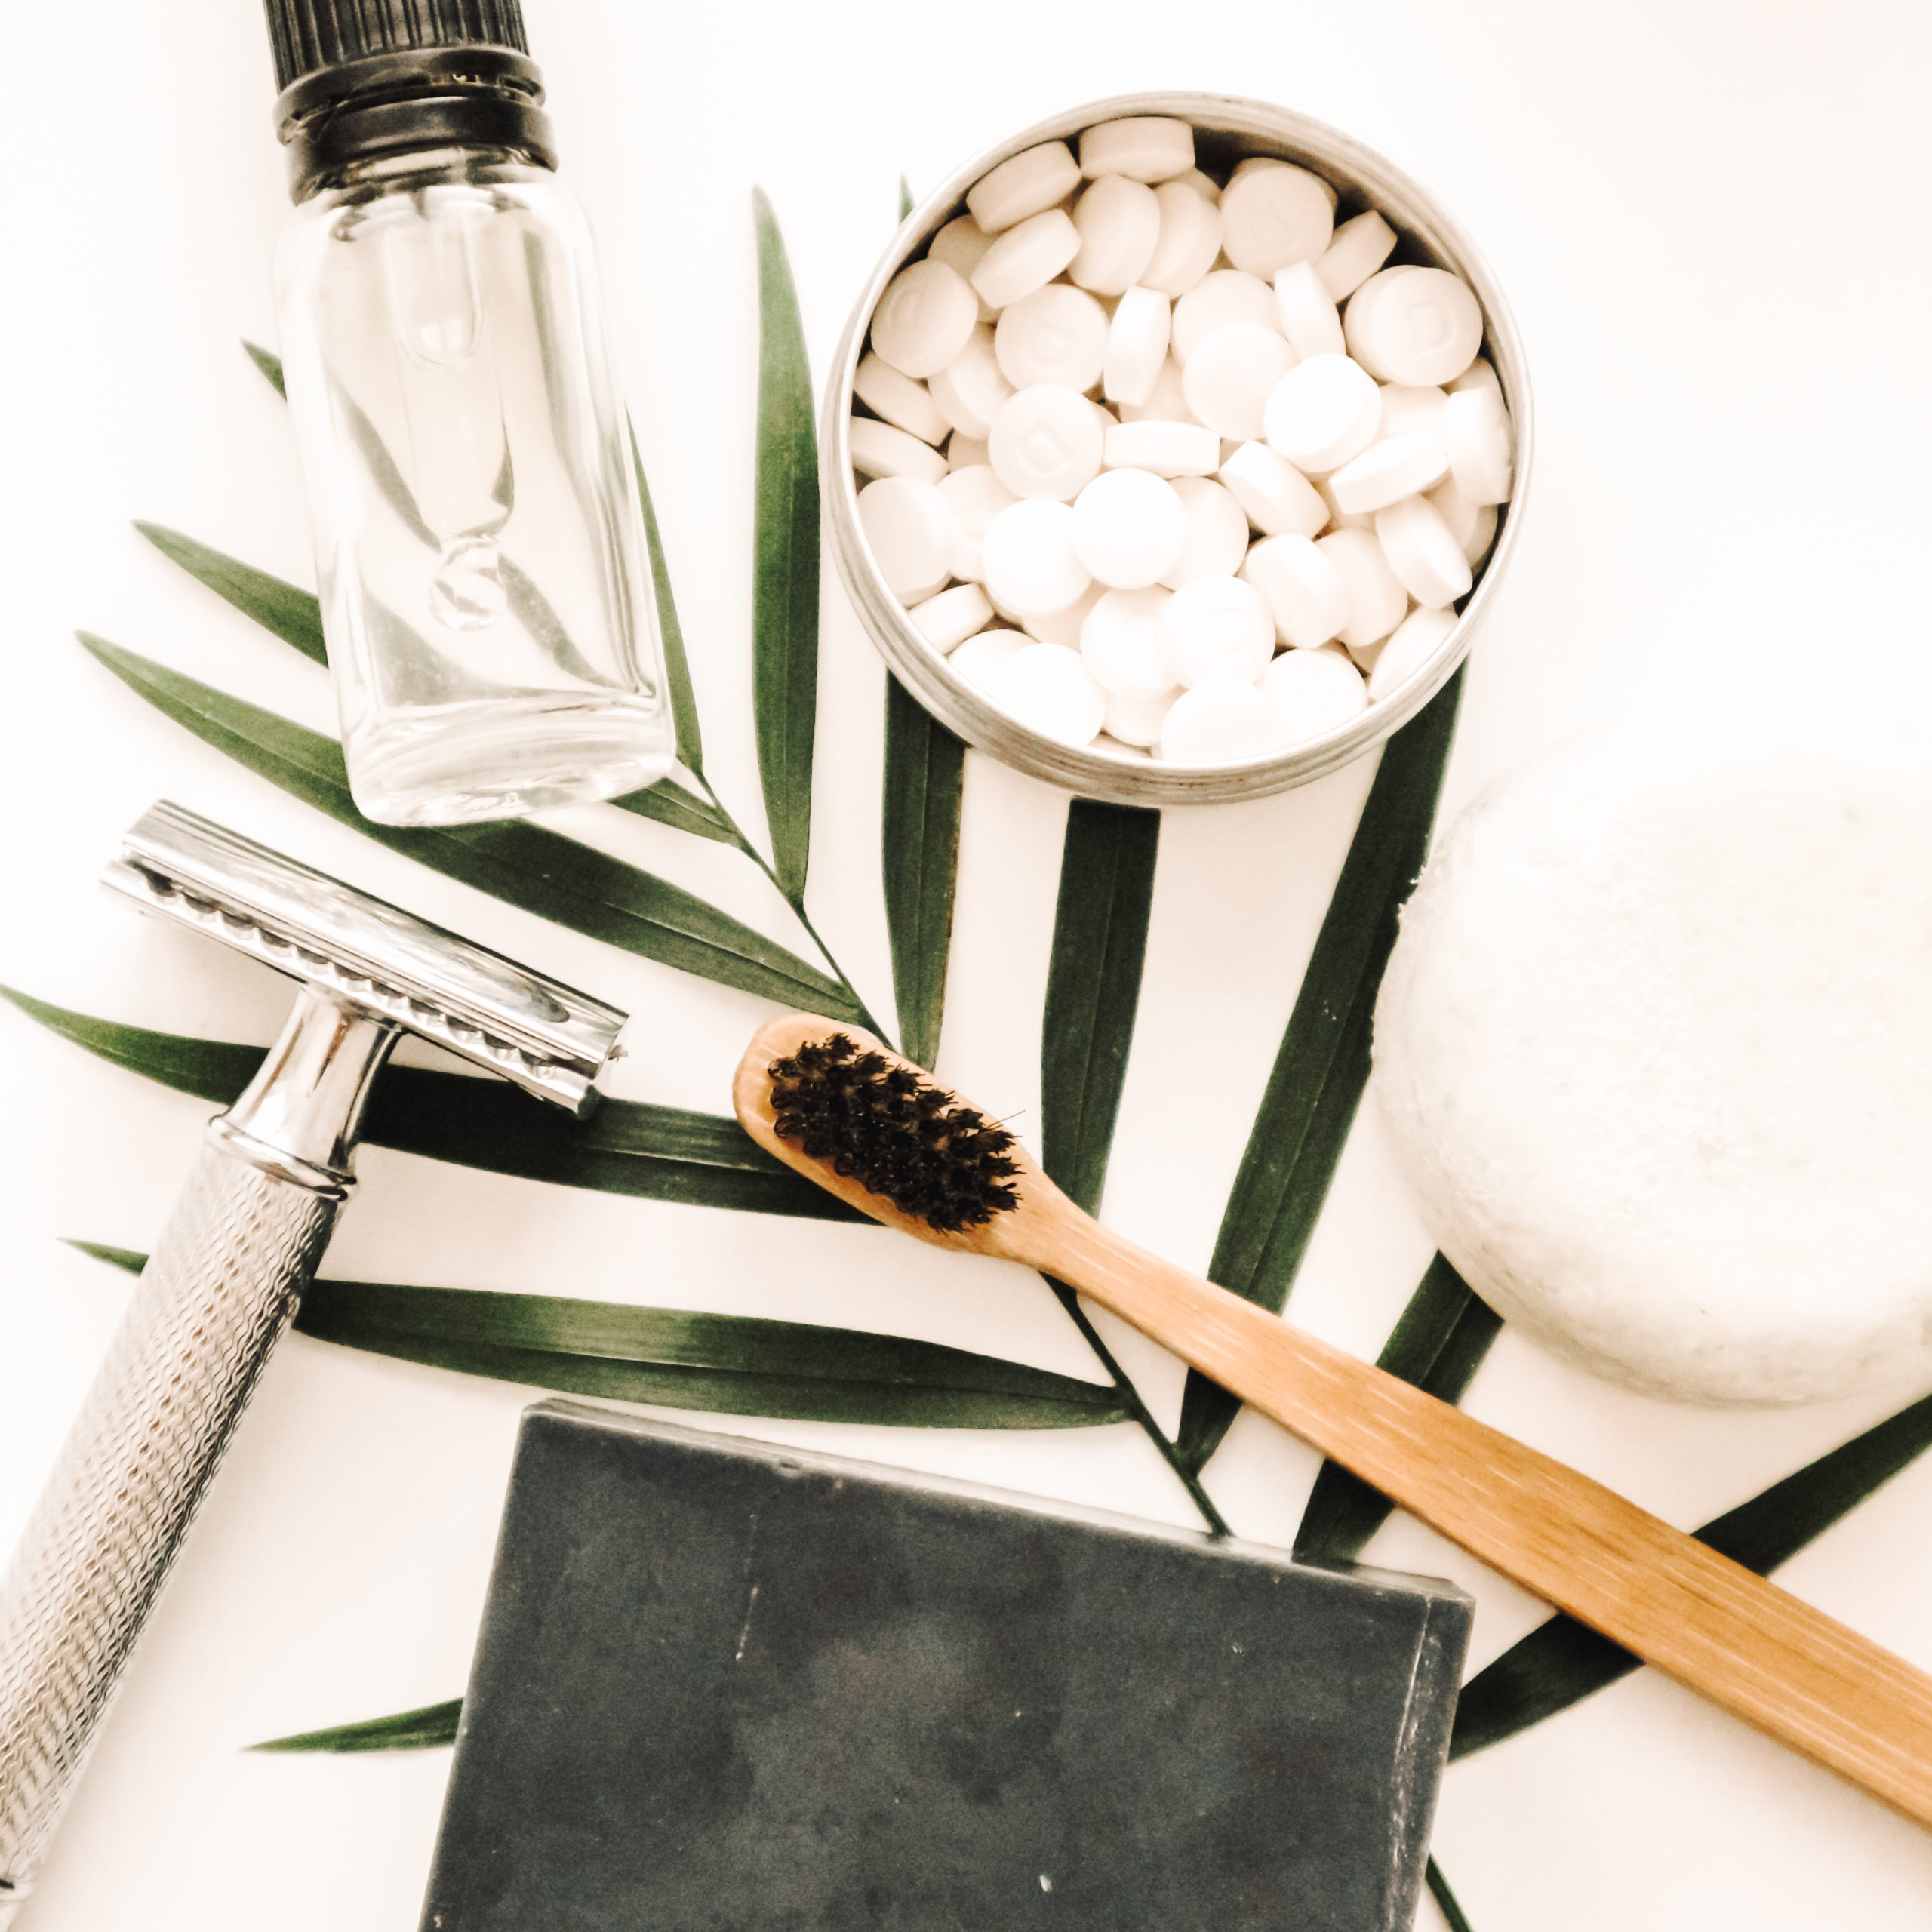 Zero waste and natural beauty products, soap, bamboo toothbrush, razor.